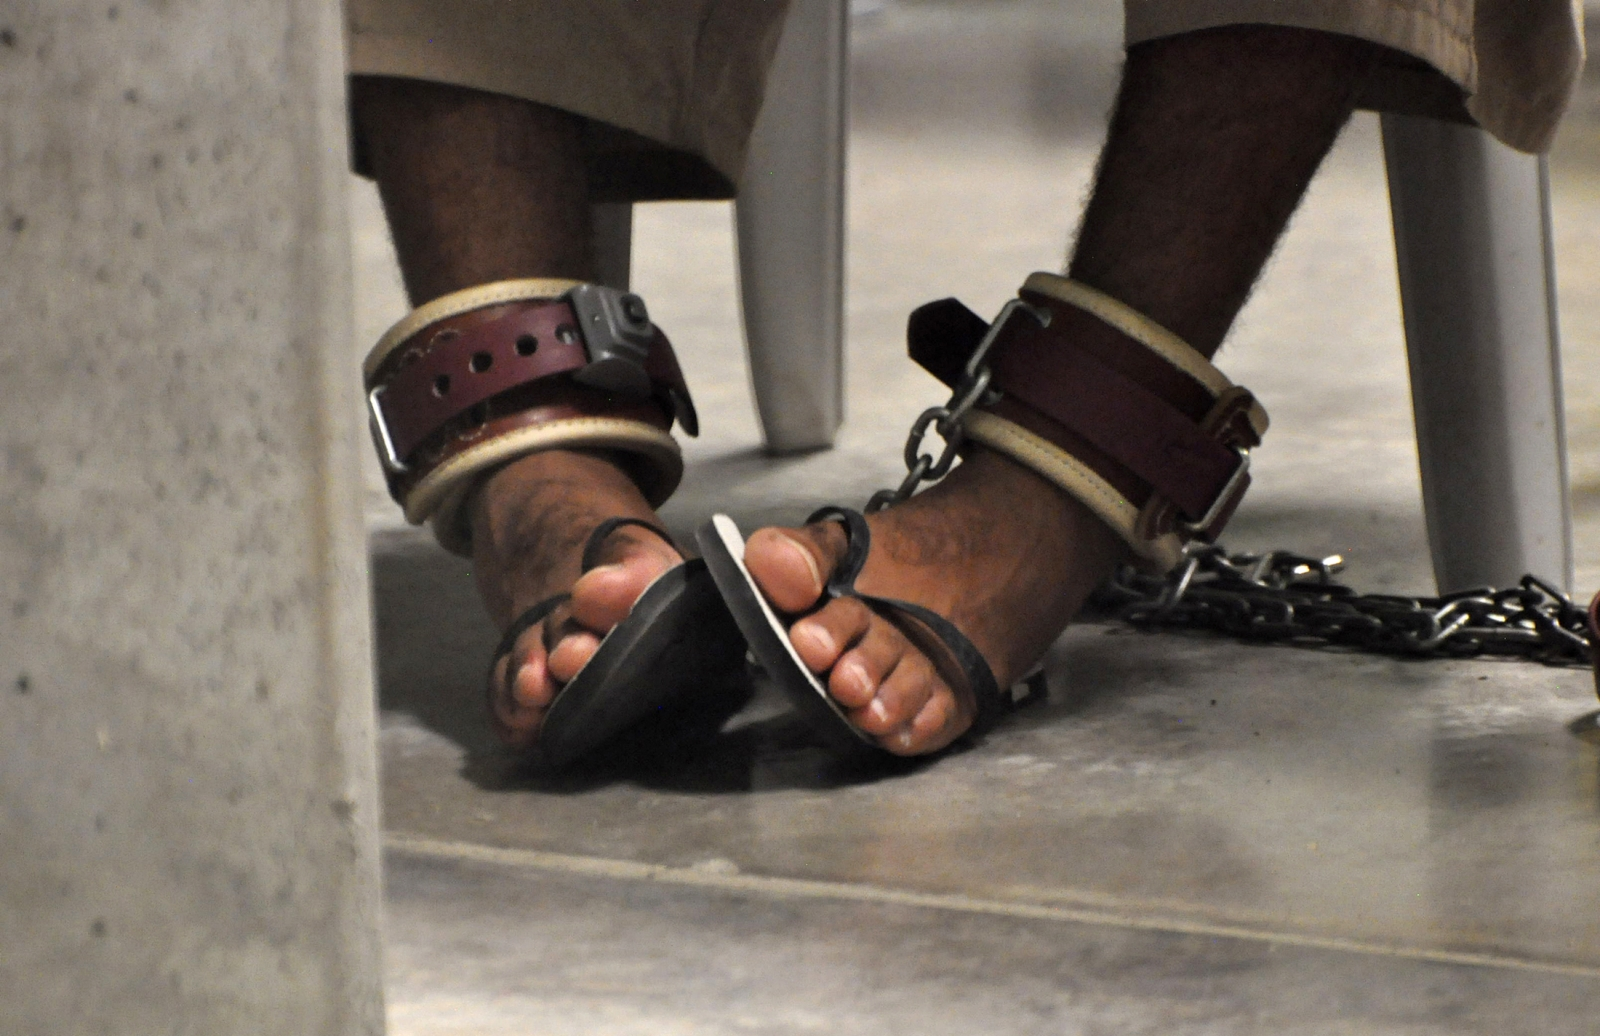 In this photo, reviewed by a U.S. Department of Defense official, a Guantanamo detainee's feet are shackled to the floor as he attends a